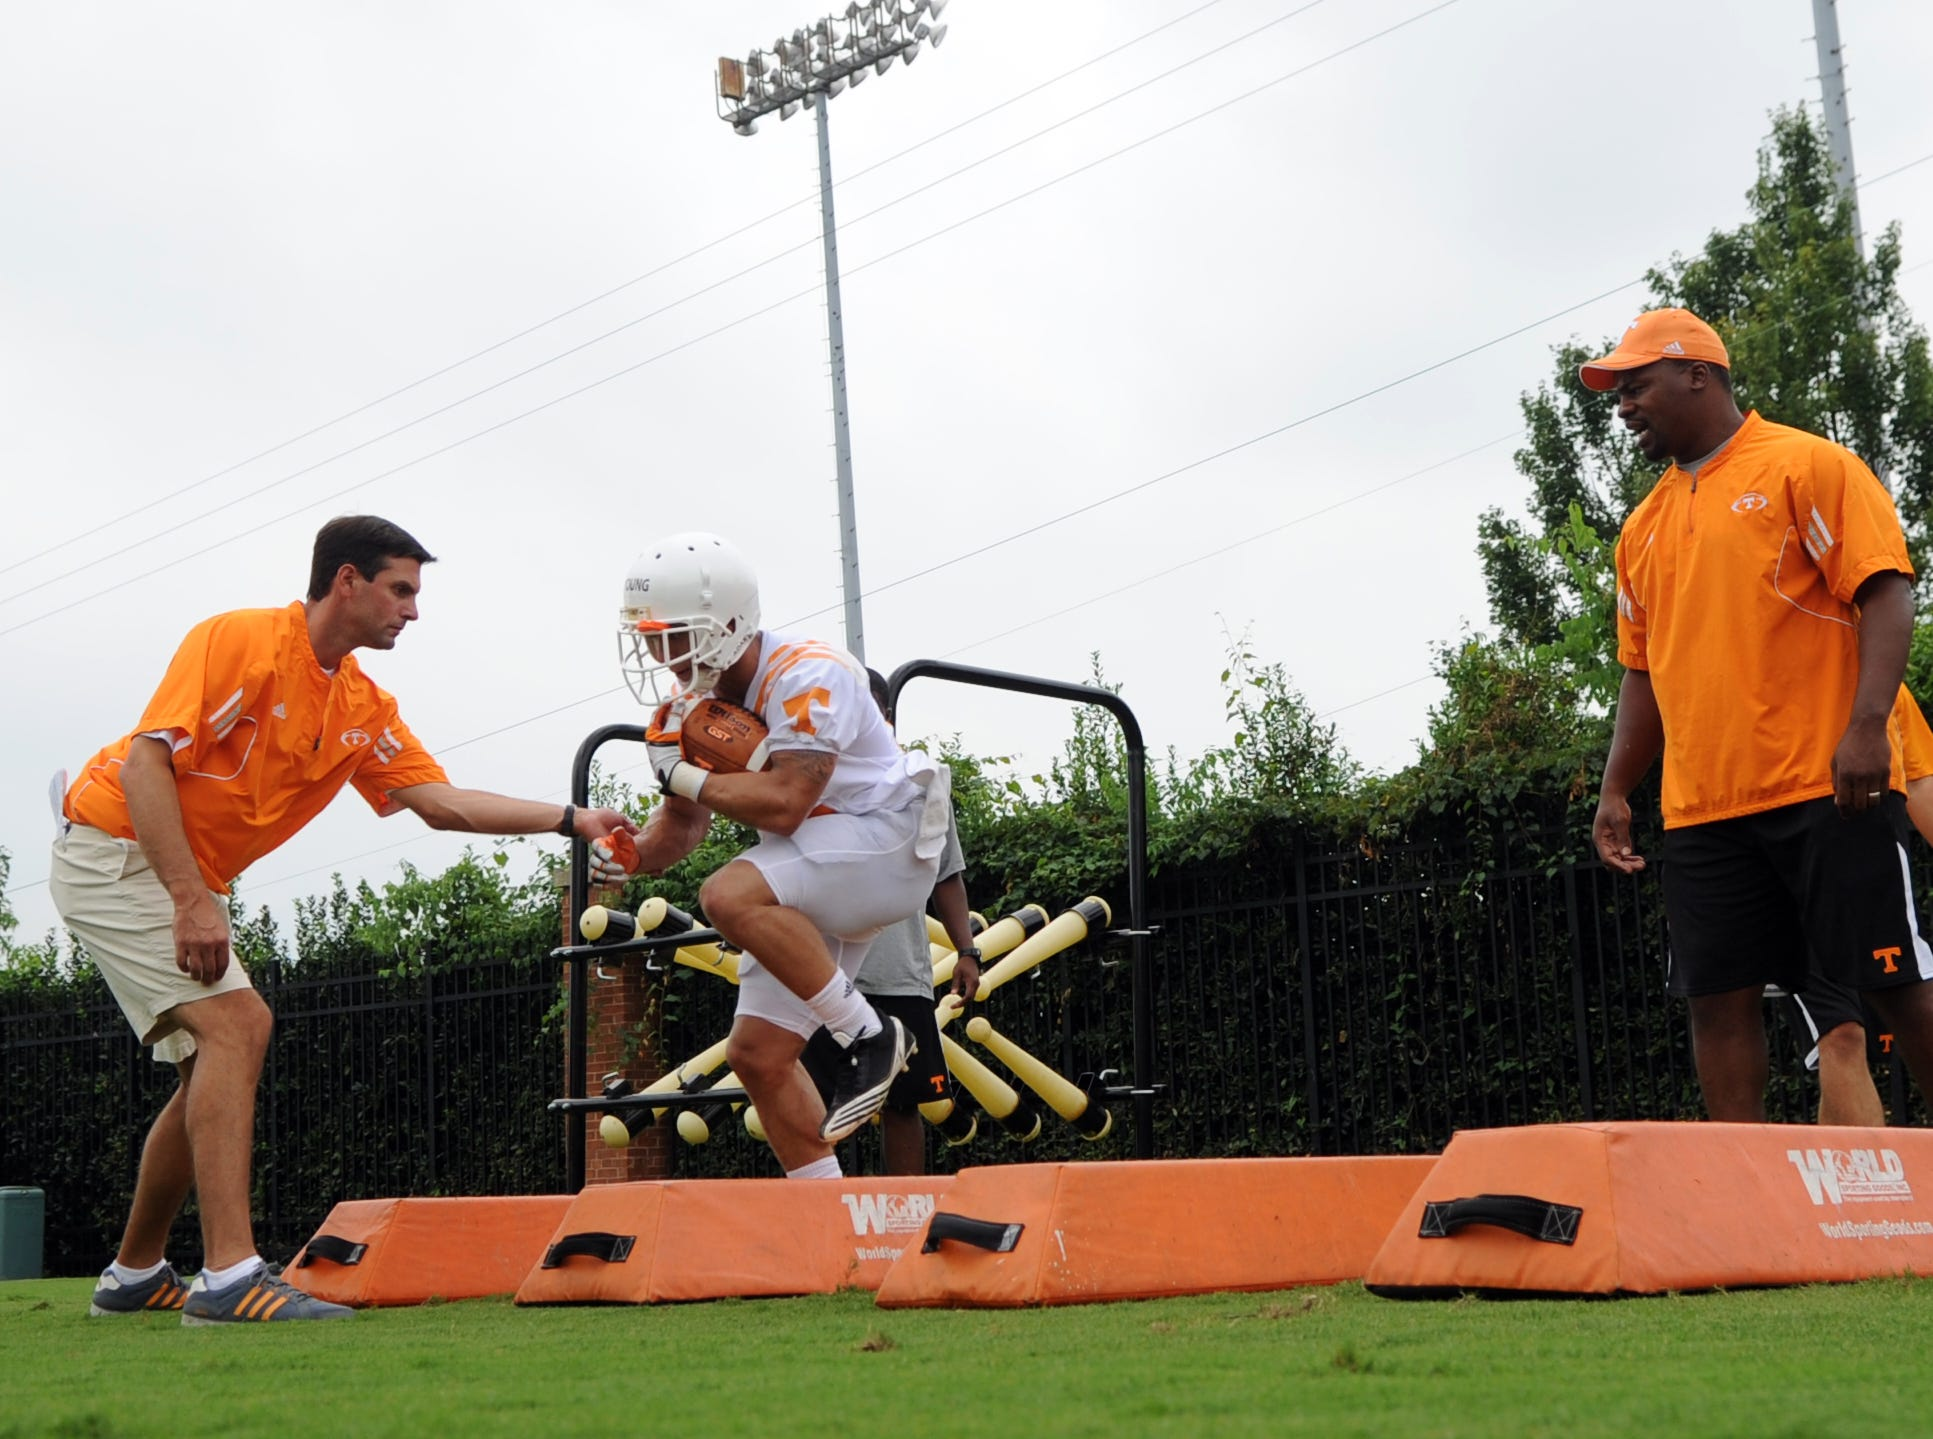 Tennessee head coach Derek Dooley helps tailback Devrin Young as he runs a drill under the supervision of running backs coach Jay Graham, right, during practice at Haslam Field at the University of Tennessee Friday, Aug. 3, 2012.